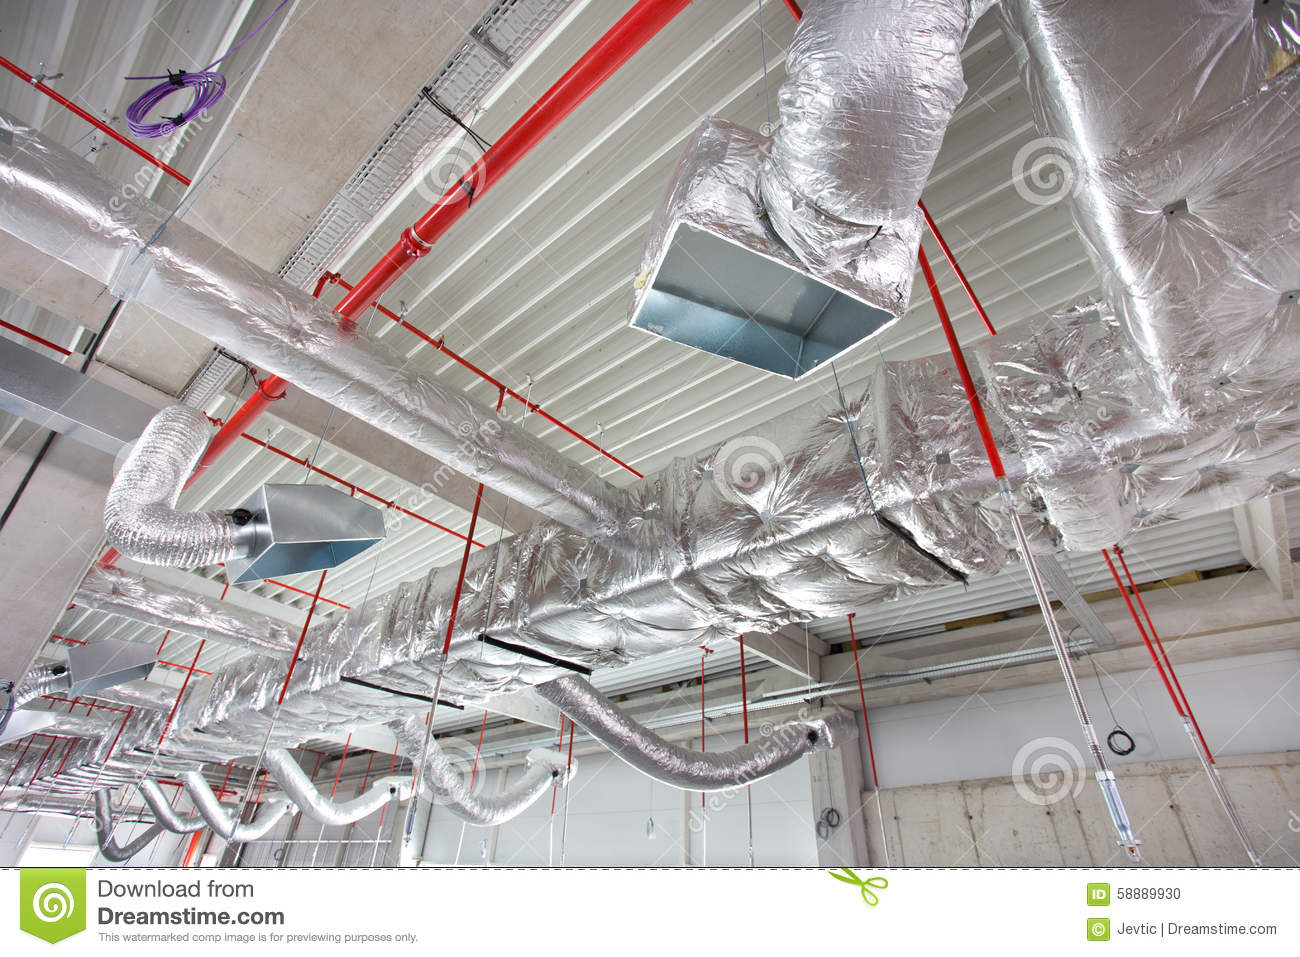 Air Conditioning And Fire Fighting System On The Ceiling